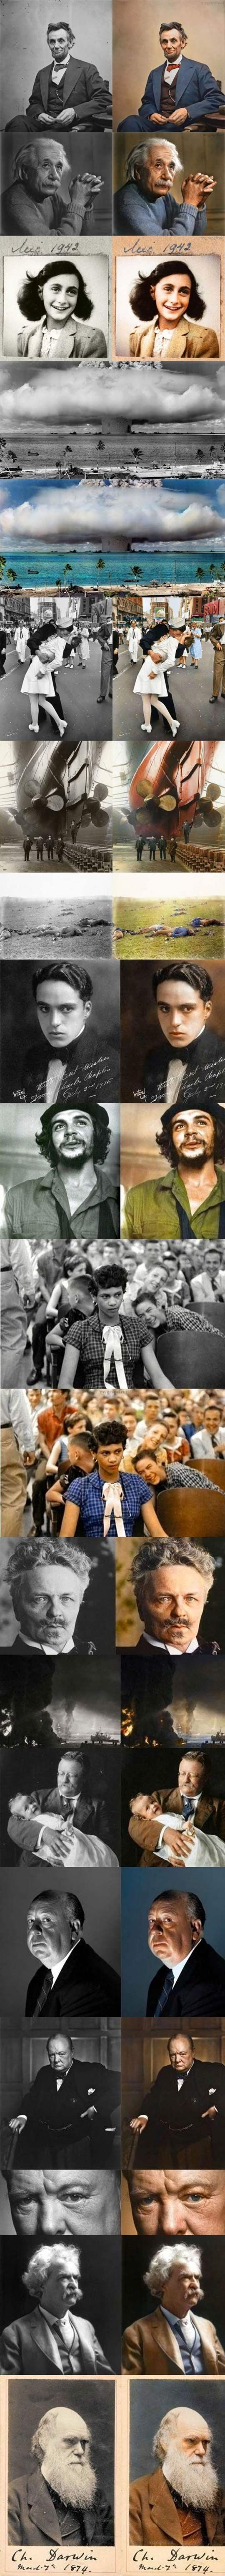 Colorized iconic photos.